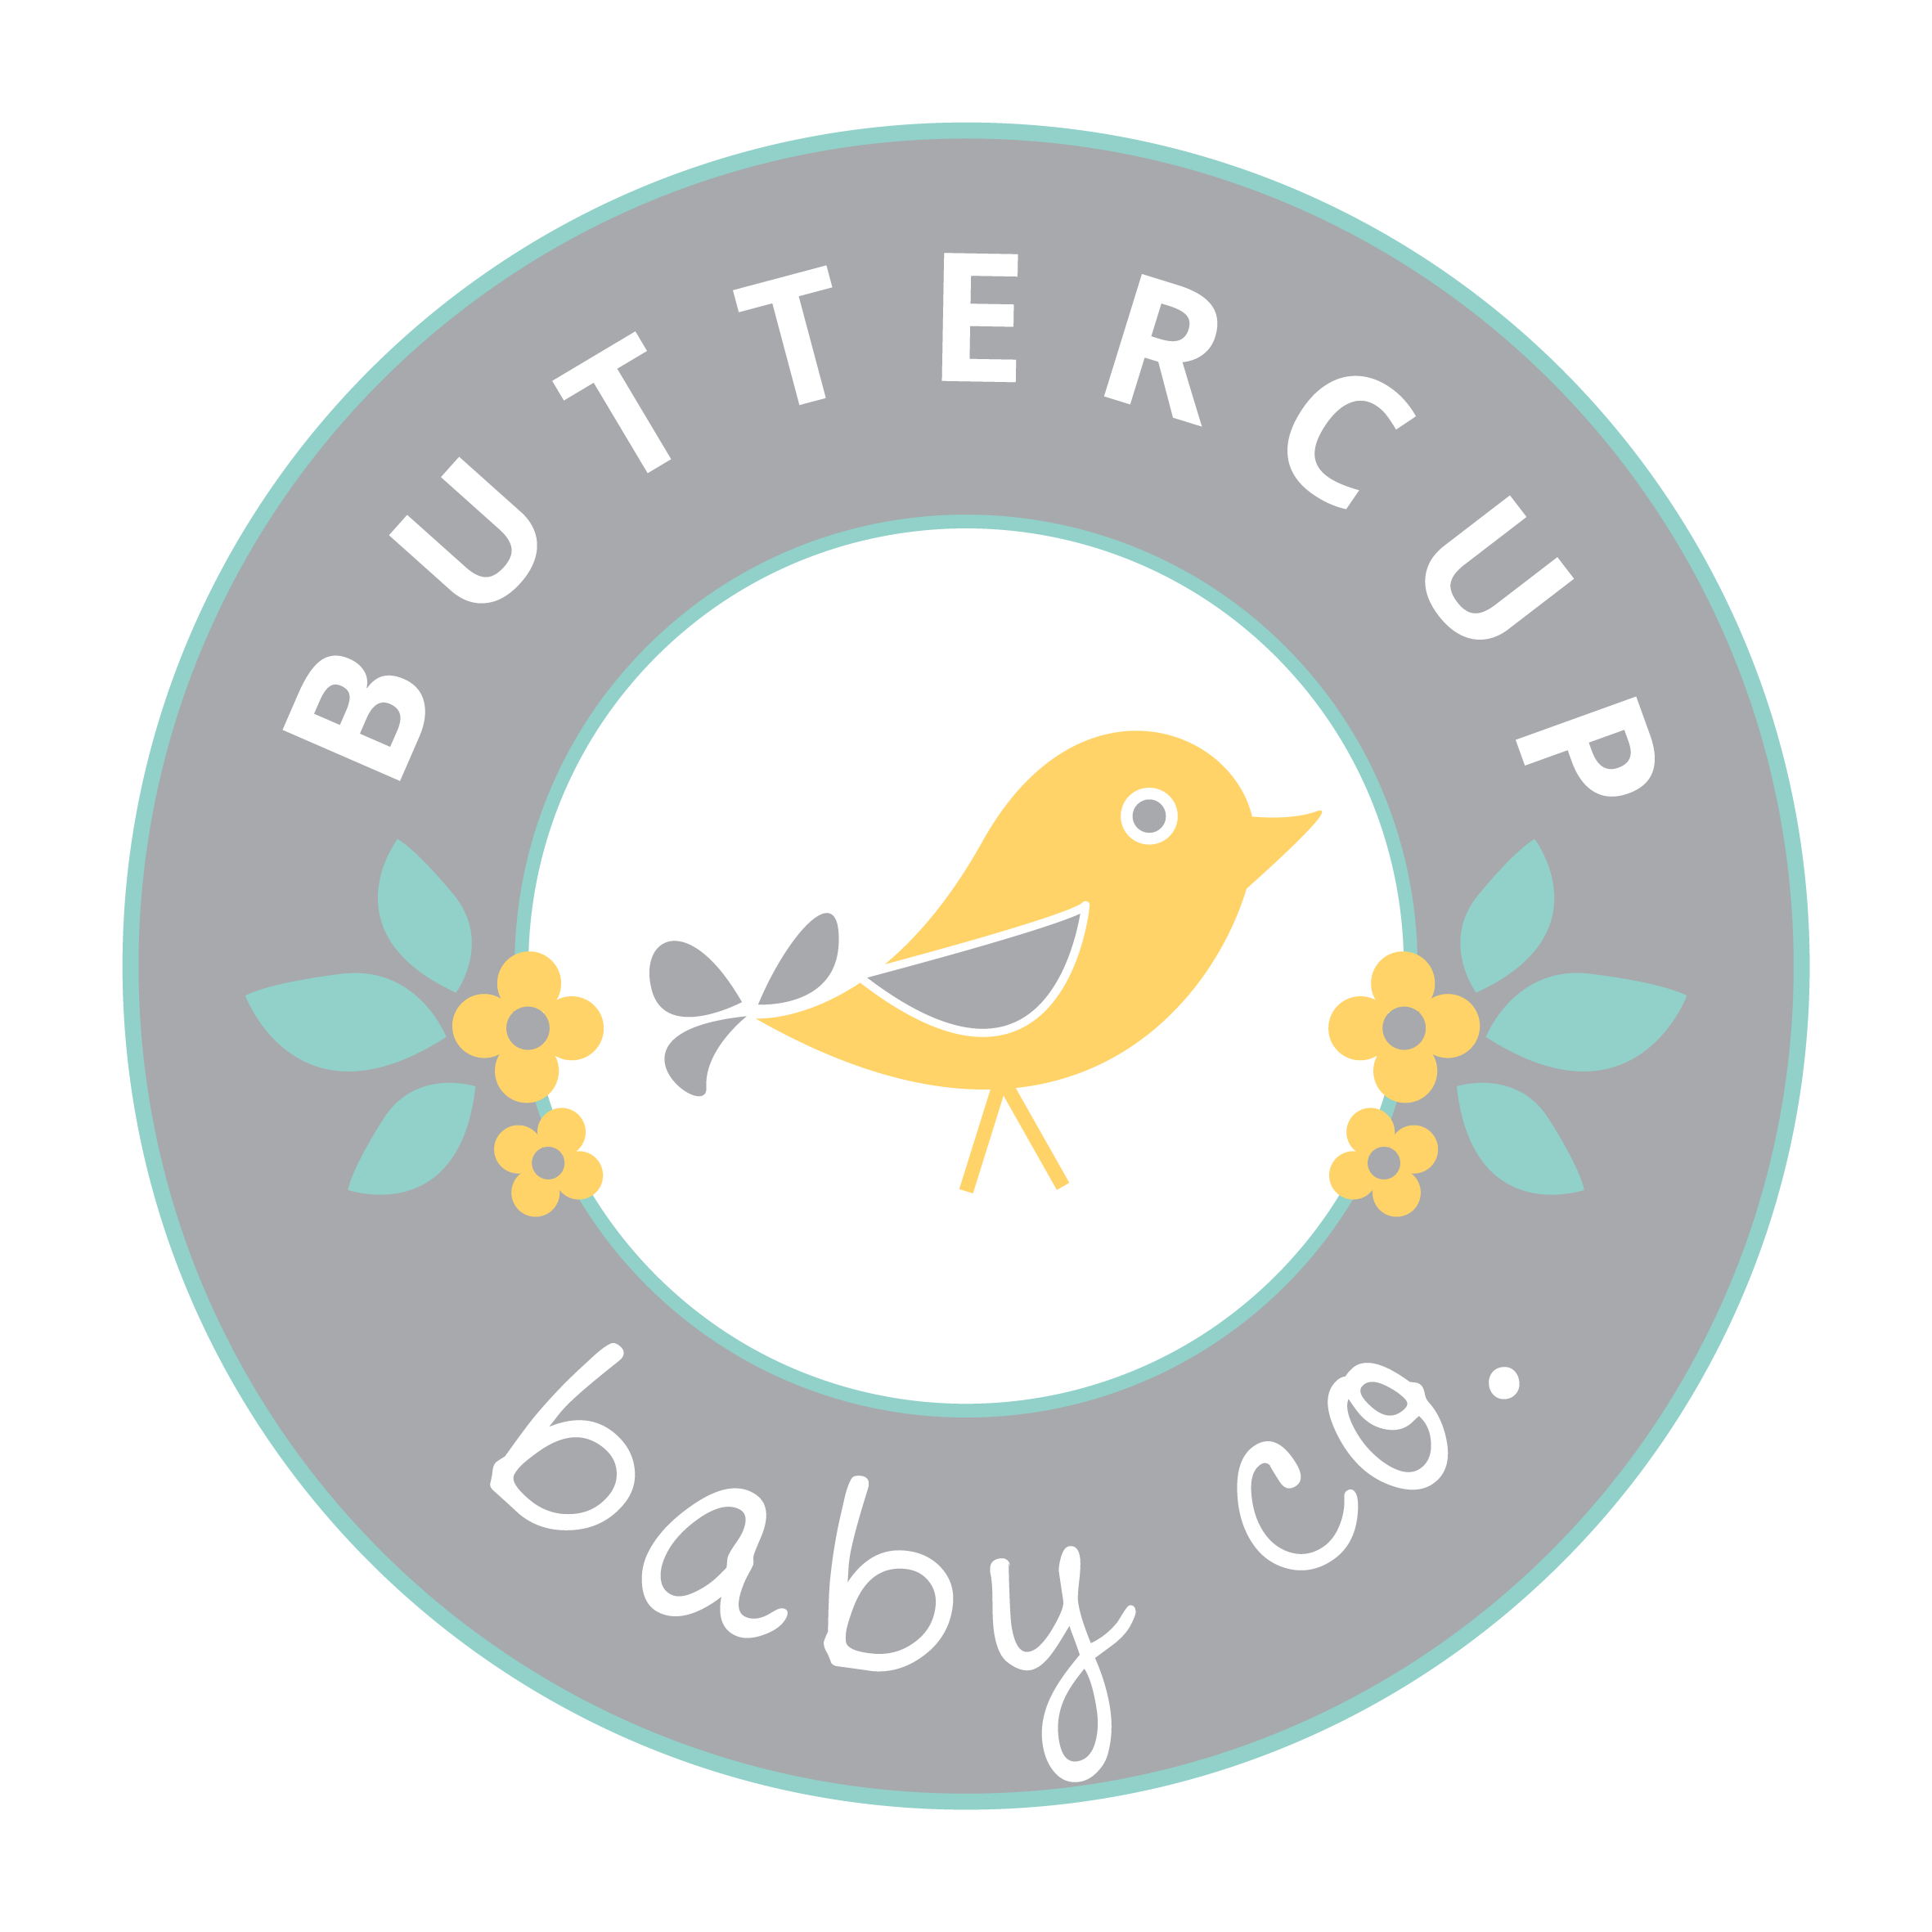 Buttercup Baby Co. needs a logo for their new store!